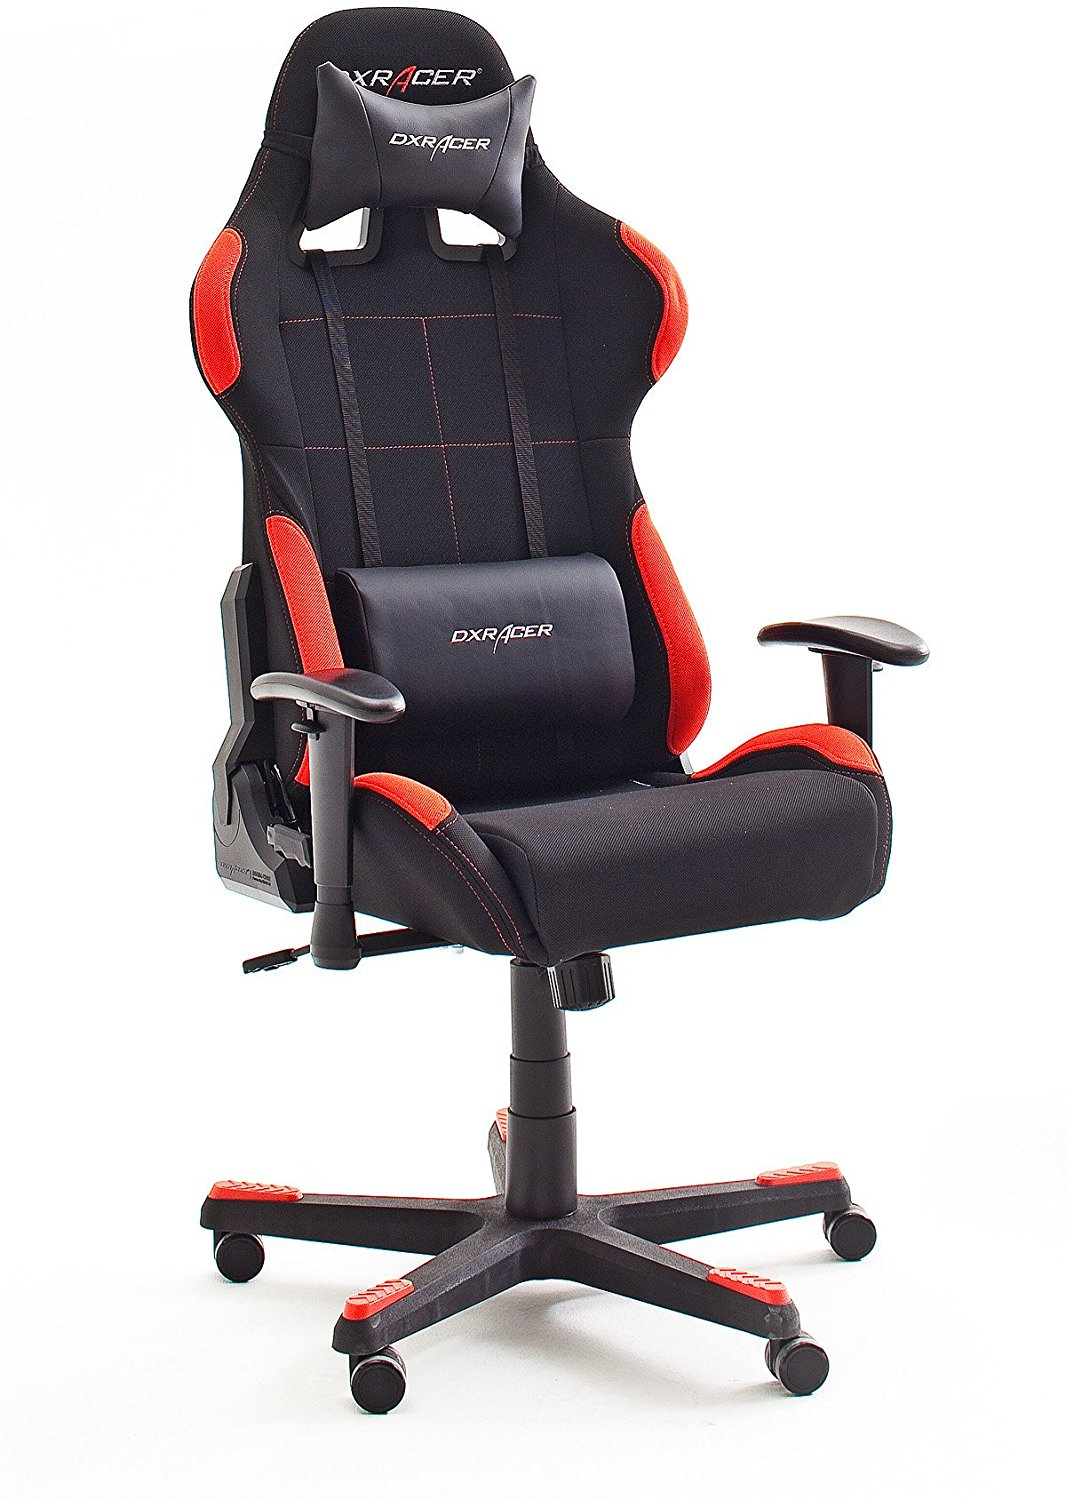 robas lund dx racer 1 gamingstuhl ergonomischer b. Black Bedroom Furniture Sets. Home Design Ideas